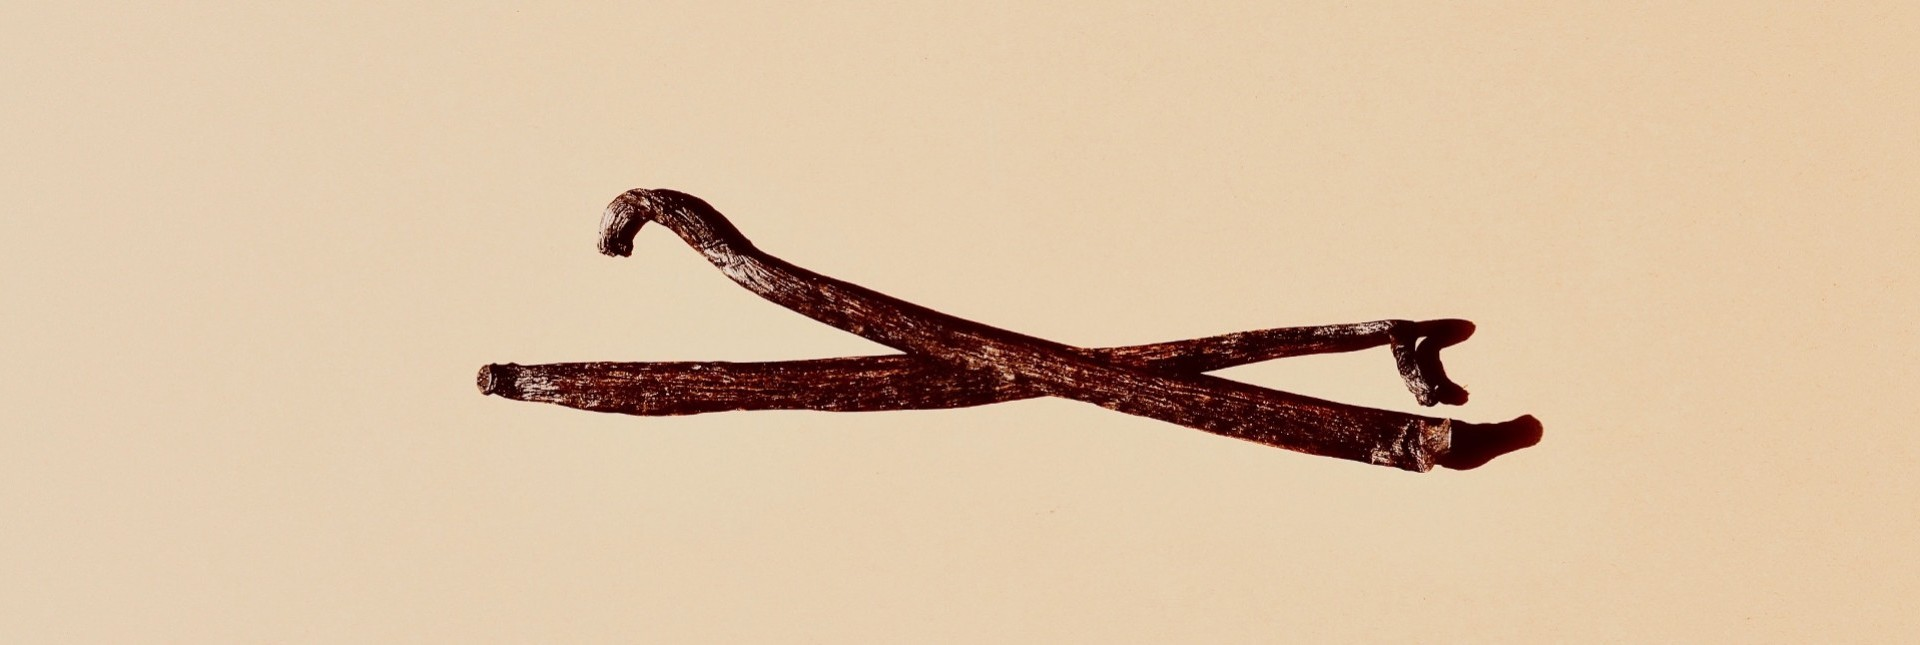 Vanilla Beans: The Cost of Production